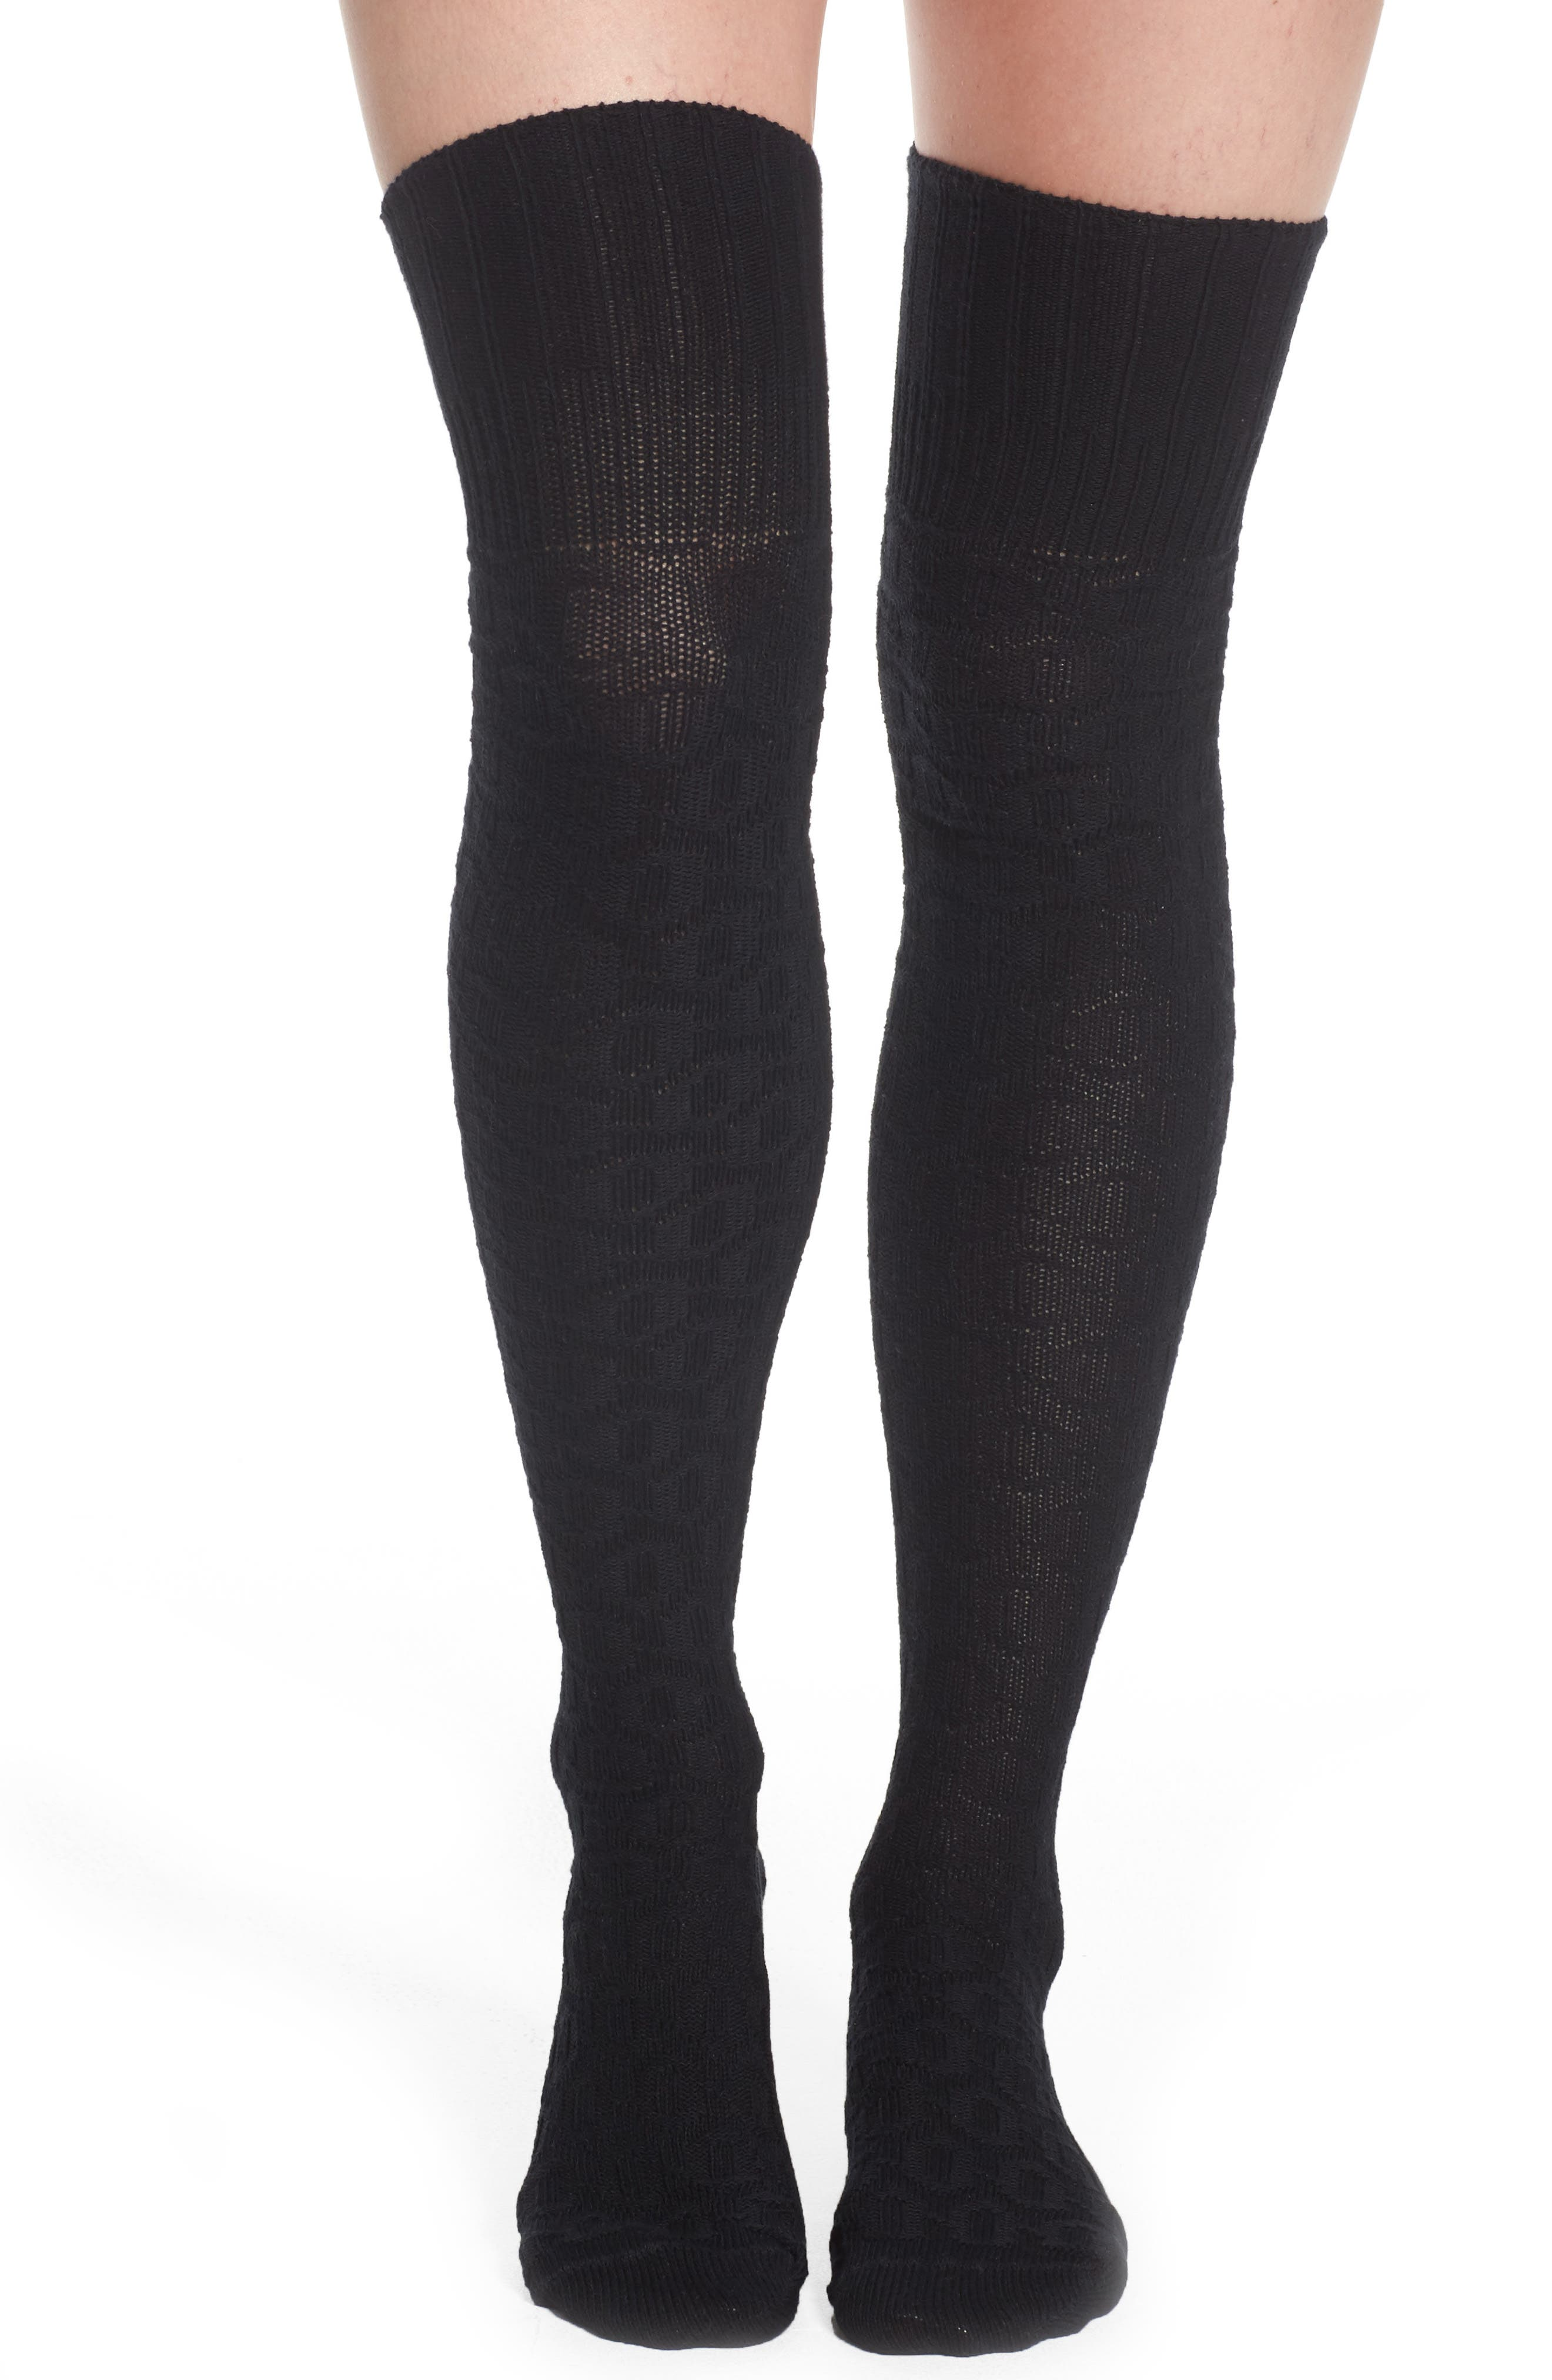 Textured Knit over the Knee Socks,                         Main,                         color, Black